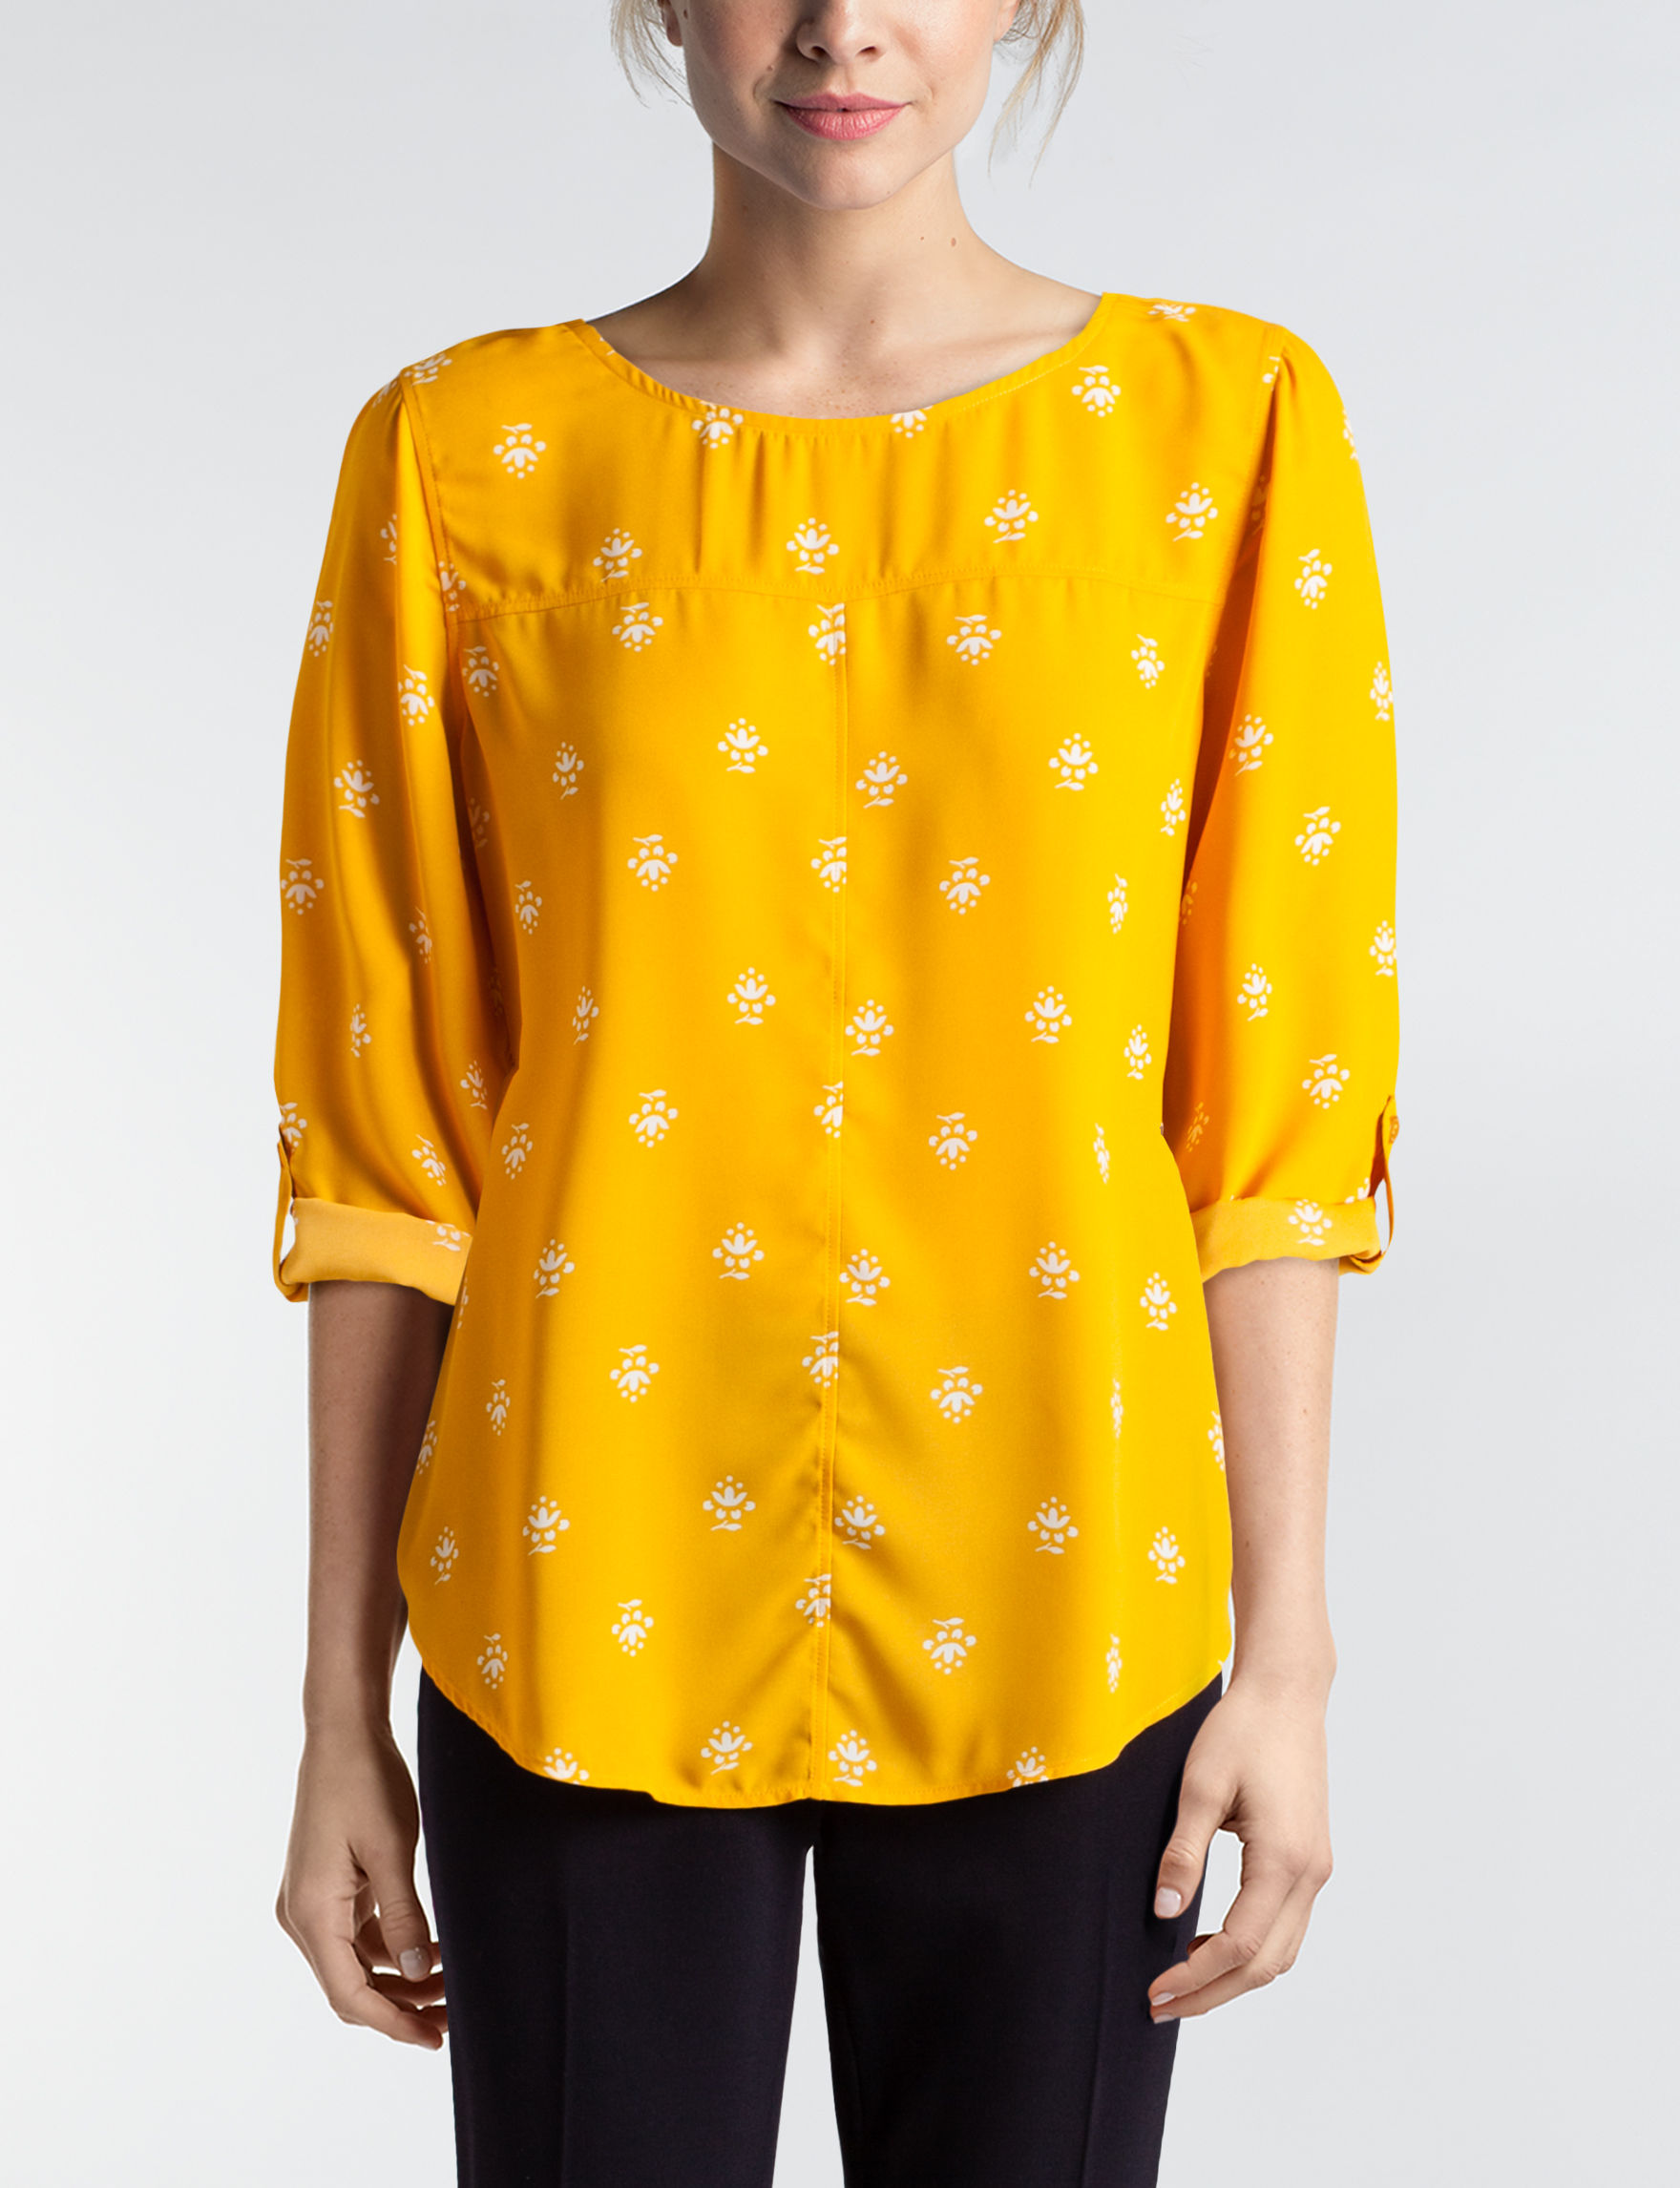 Valerie Stevens Yellow Floral Shirts & Blouses